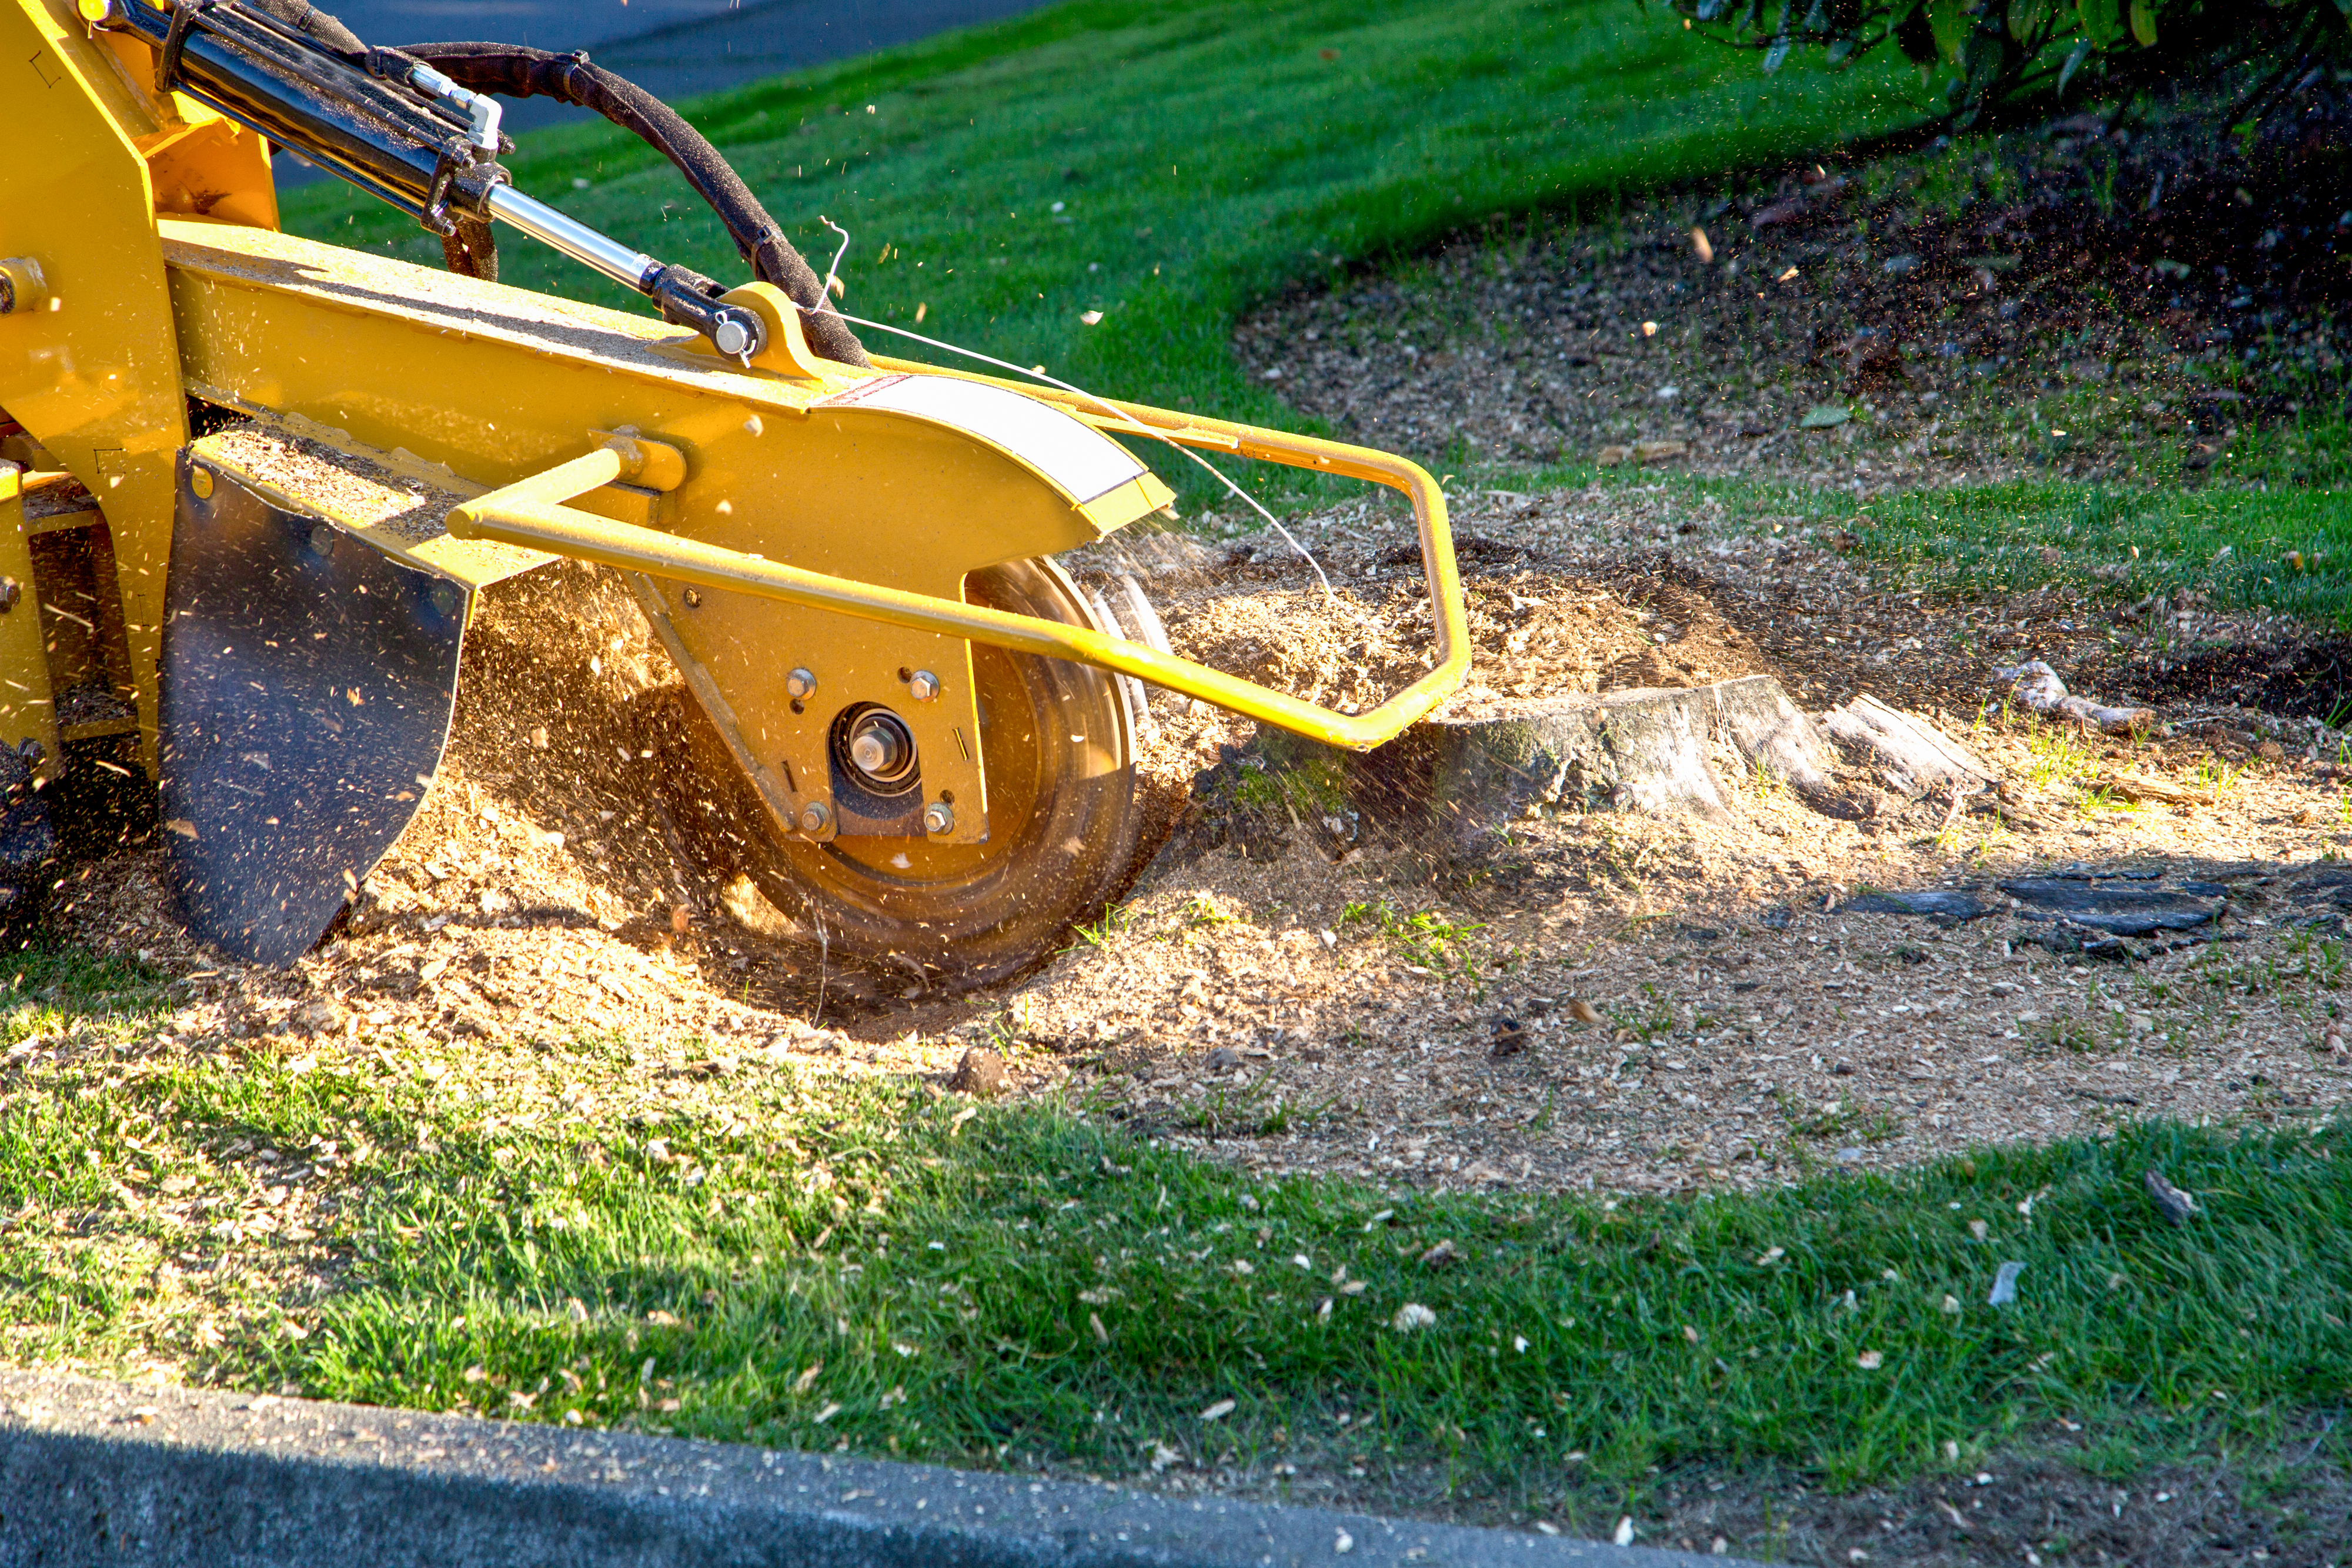 A large yellow machine removing a tree stump in a green yard.